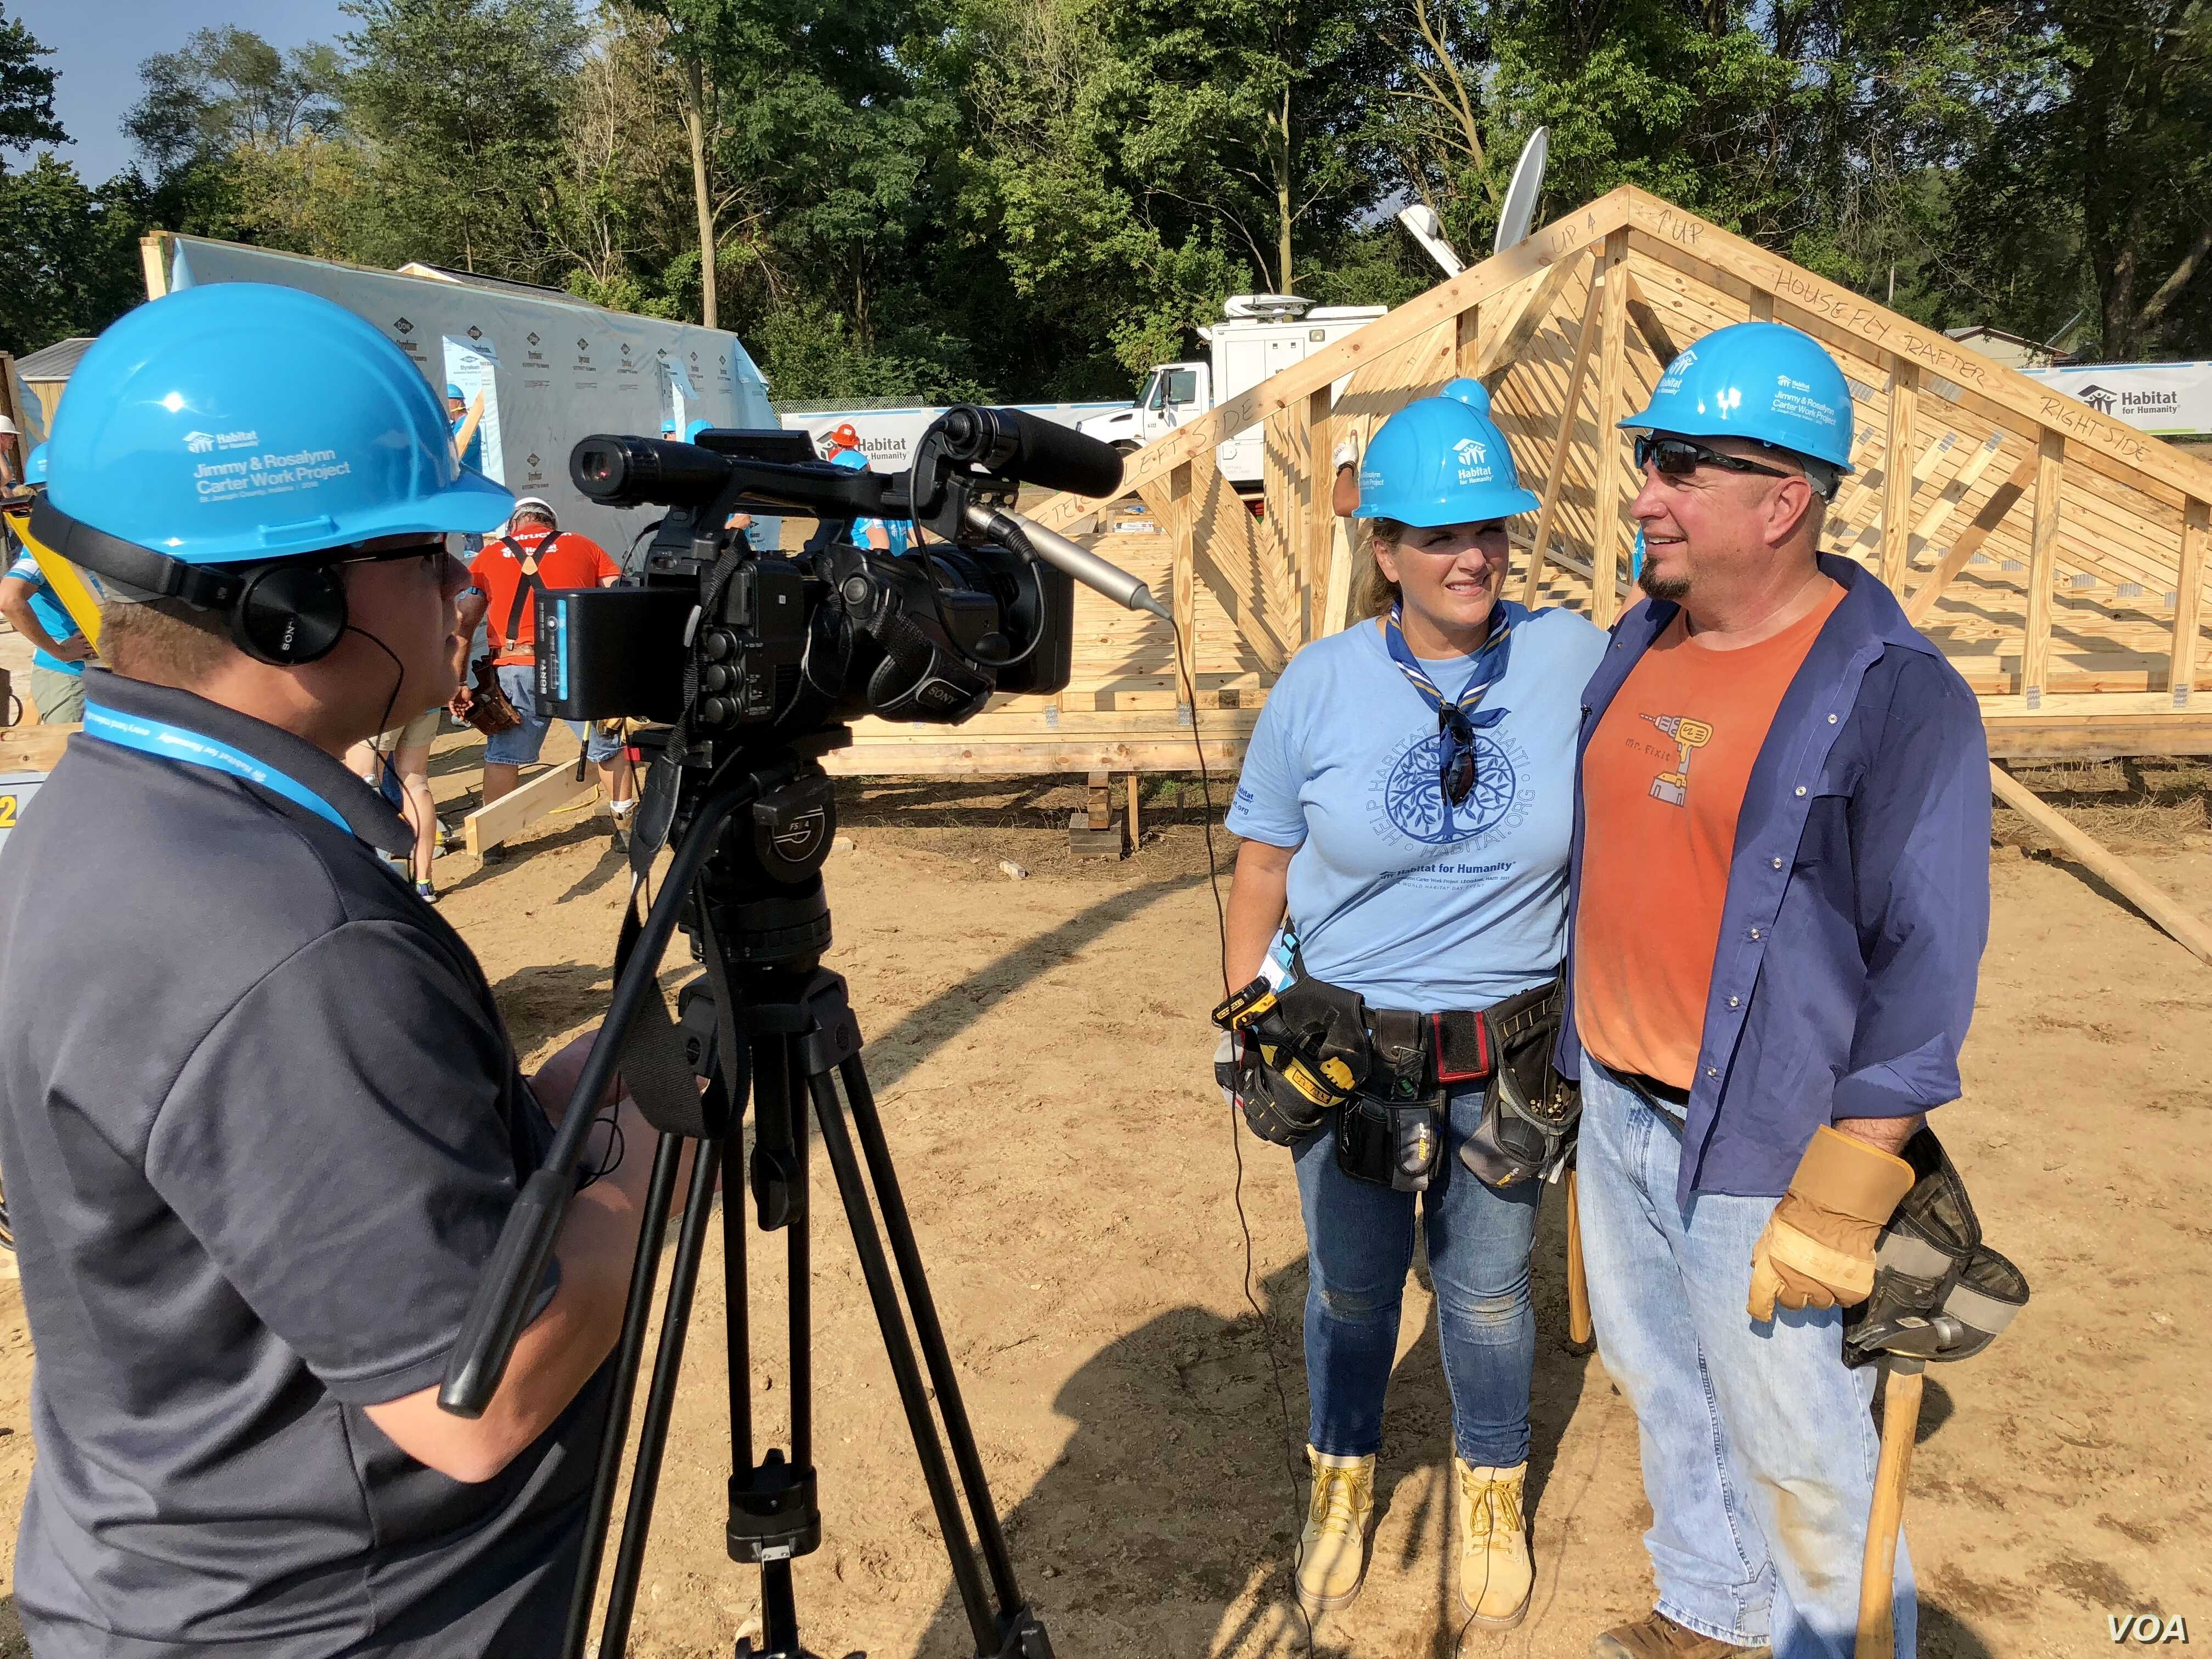 Country music icons Garth Brooks and Trisha Yearwood are just two volunteers among hundreds in what is a massive volunteer effort on the outskirts of South Bend, Ind., to build nearly two dozen homes.